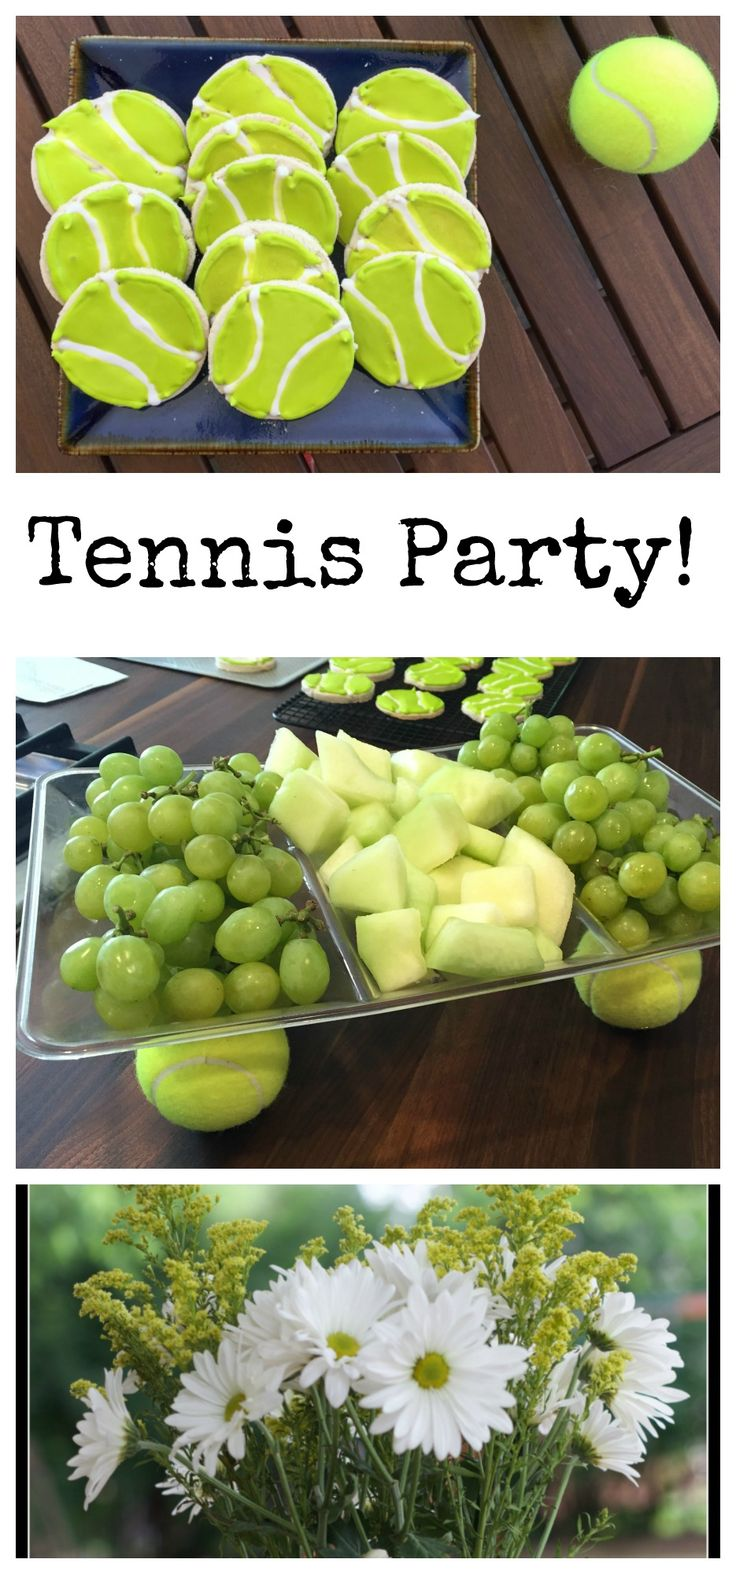 Tennis Party! Celebrate your tennis team or a Grand Slam tournament! Tips and tricks to make a fun, tennis-themed party for your friends. || Erin Brighton | gluten-free | cookies | party ideas | decorating | party tips